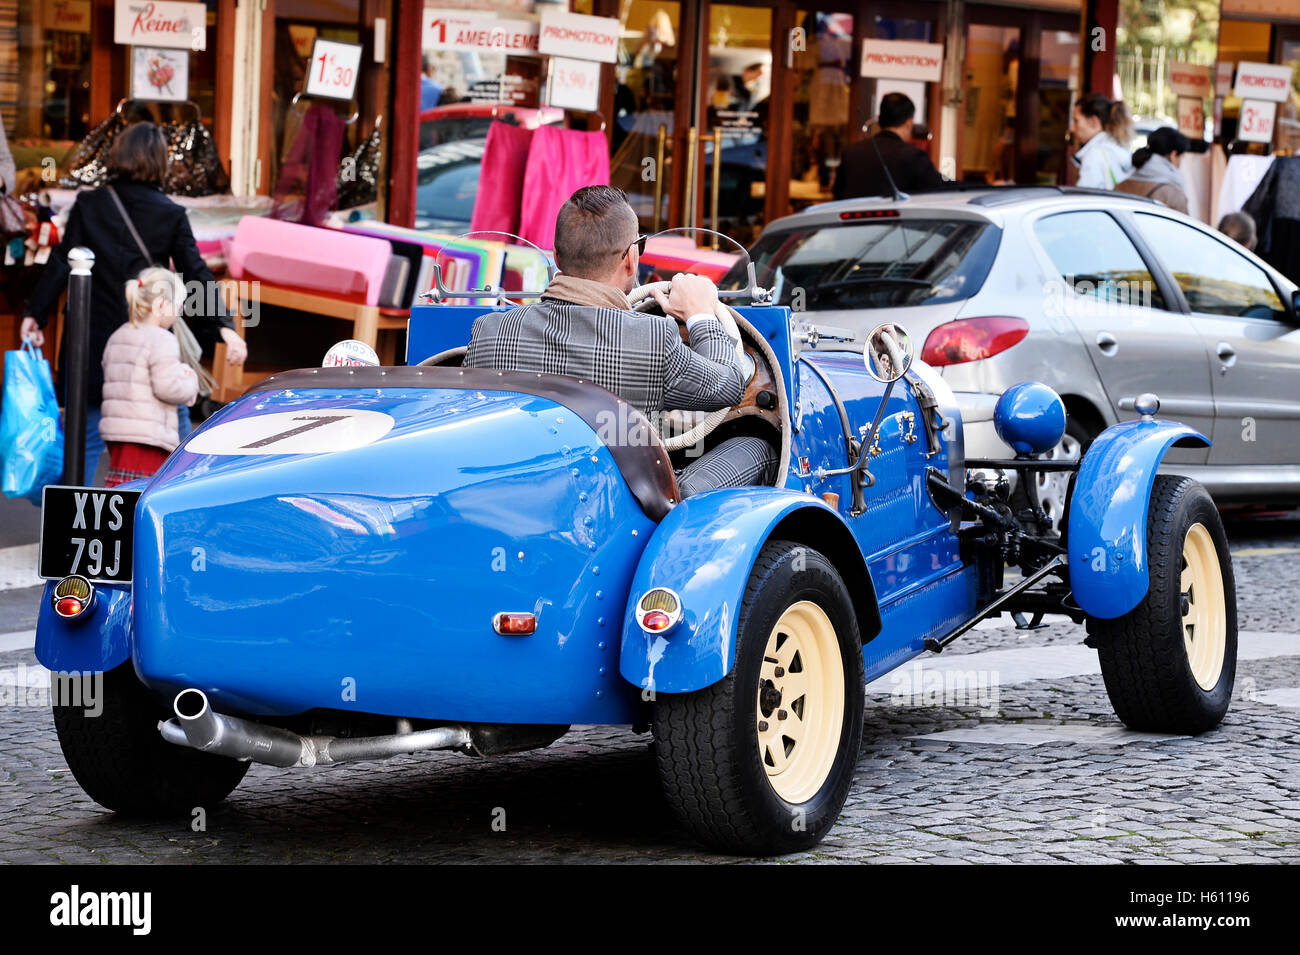 Old car in Montmartre street of Paris, France - Stock Image